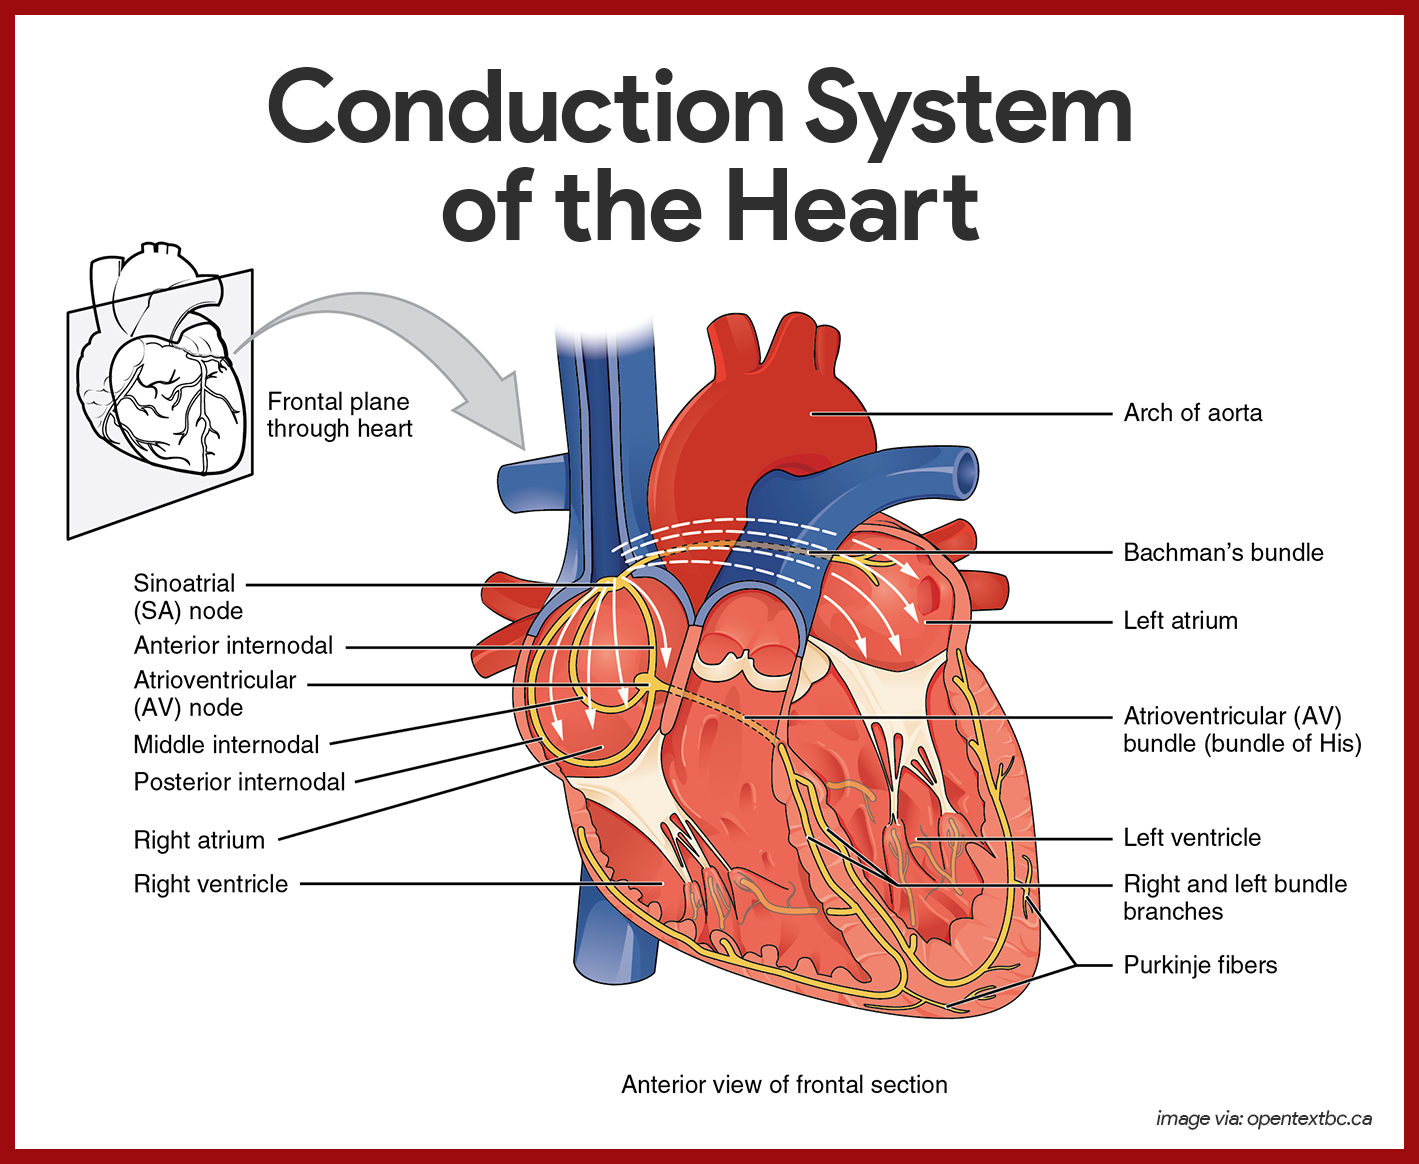 Human Heart Anatomy Of The Heart Cardiovascular System Manual Guide